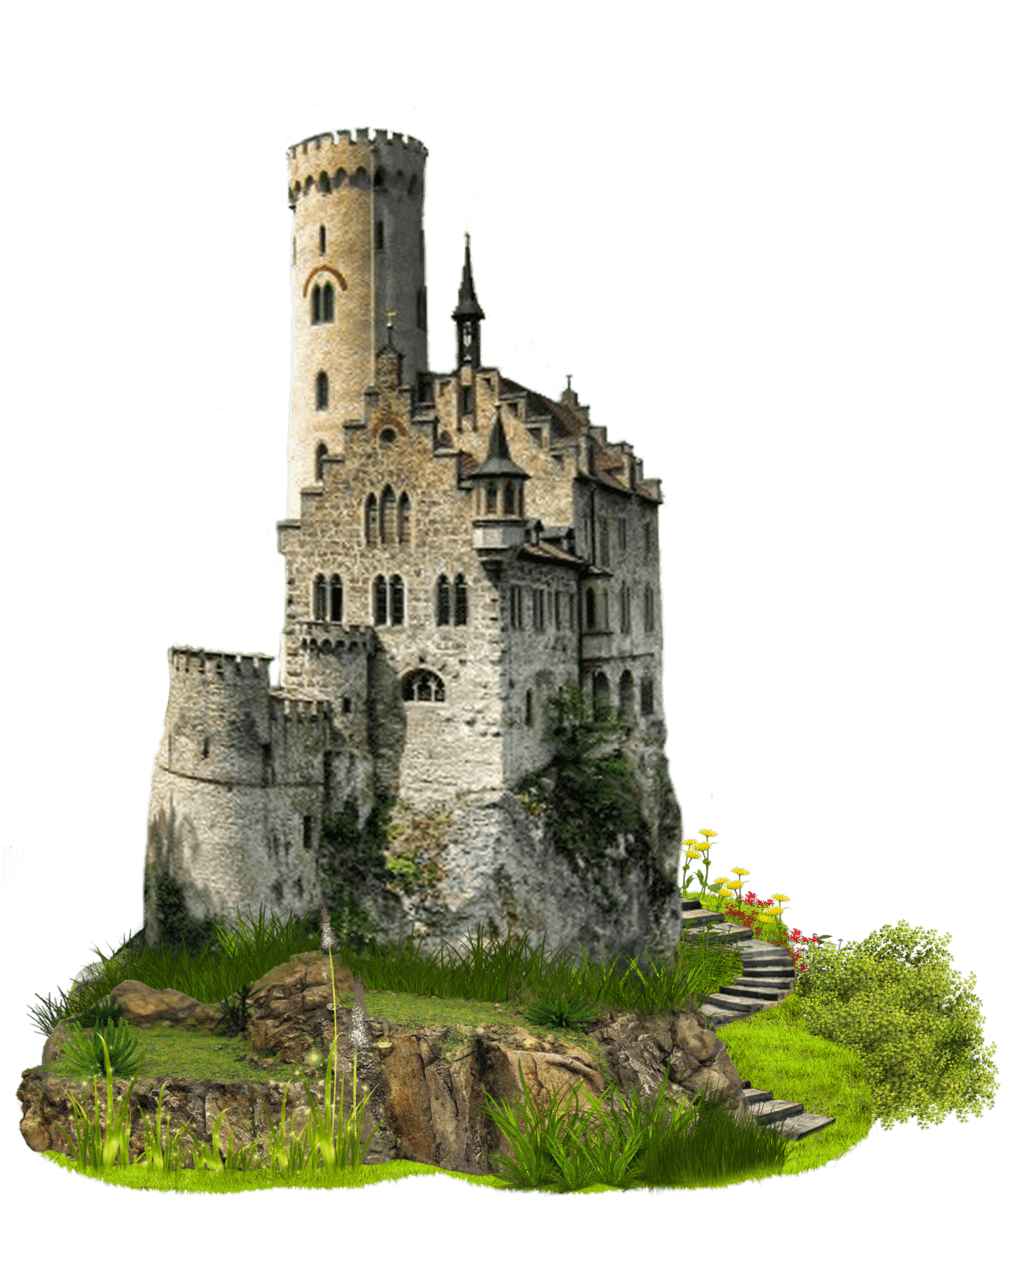 transparent castle landscape